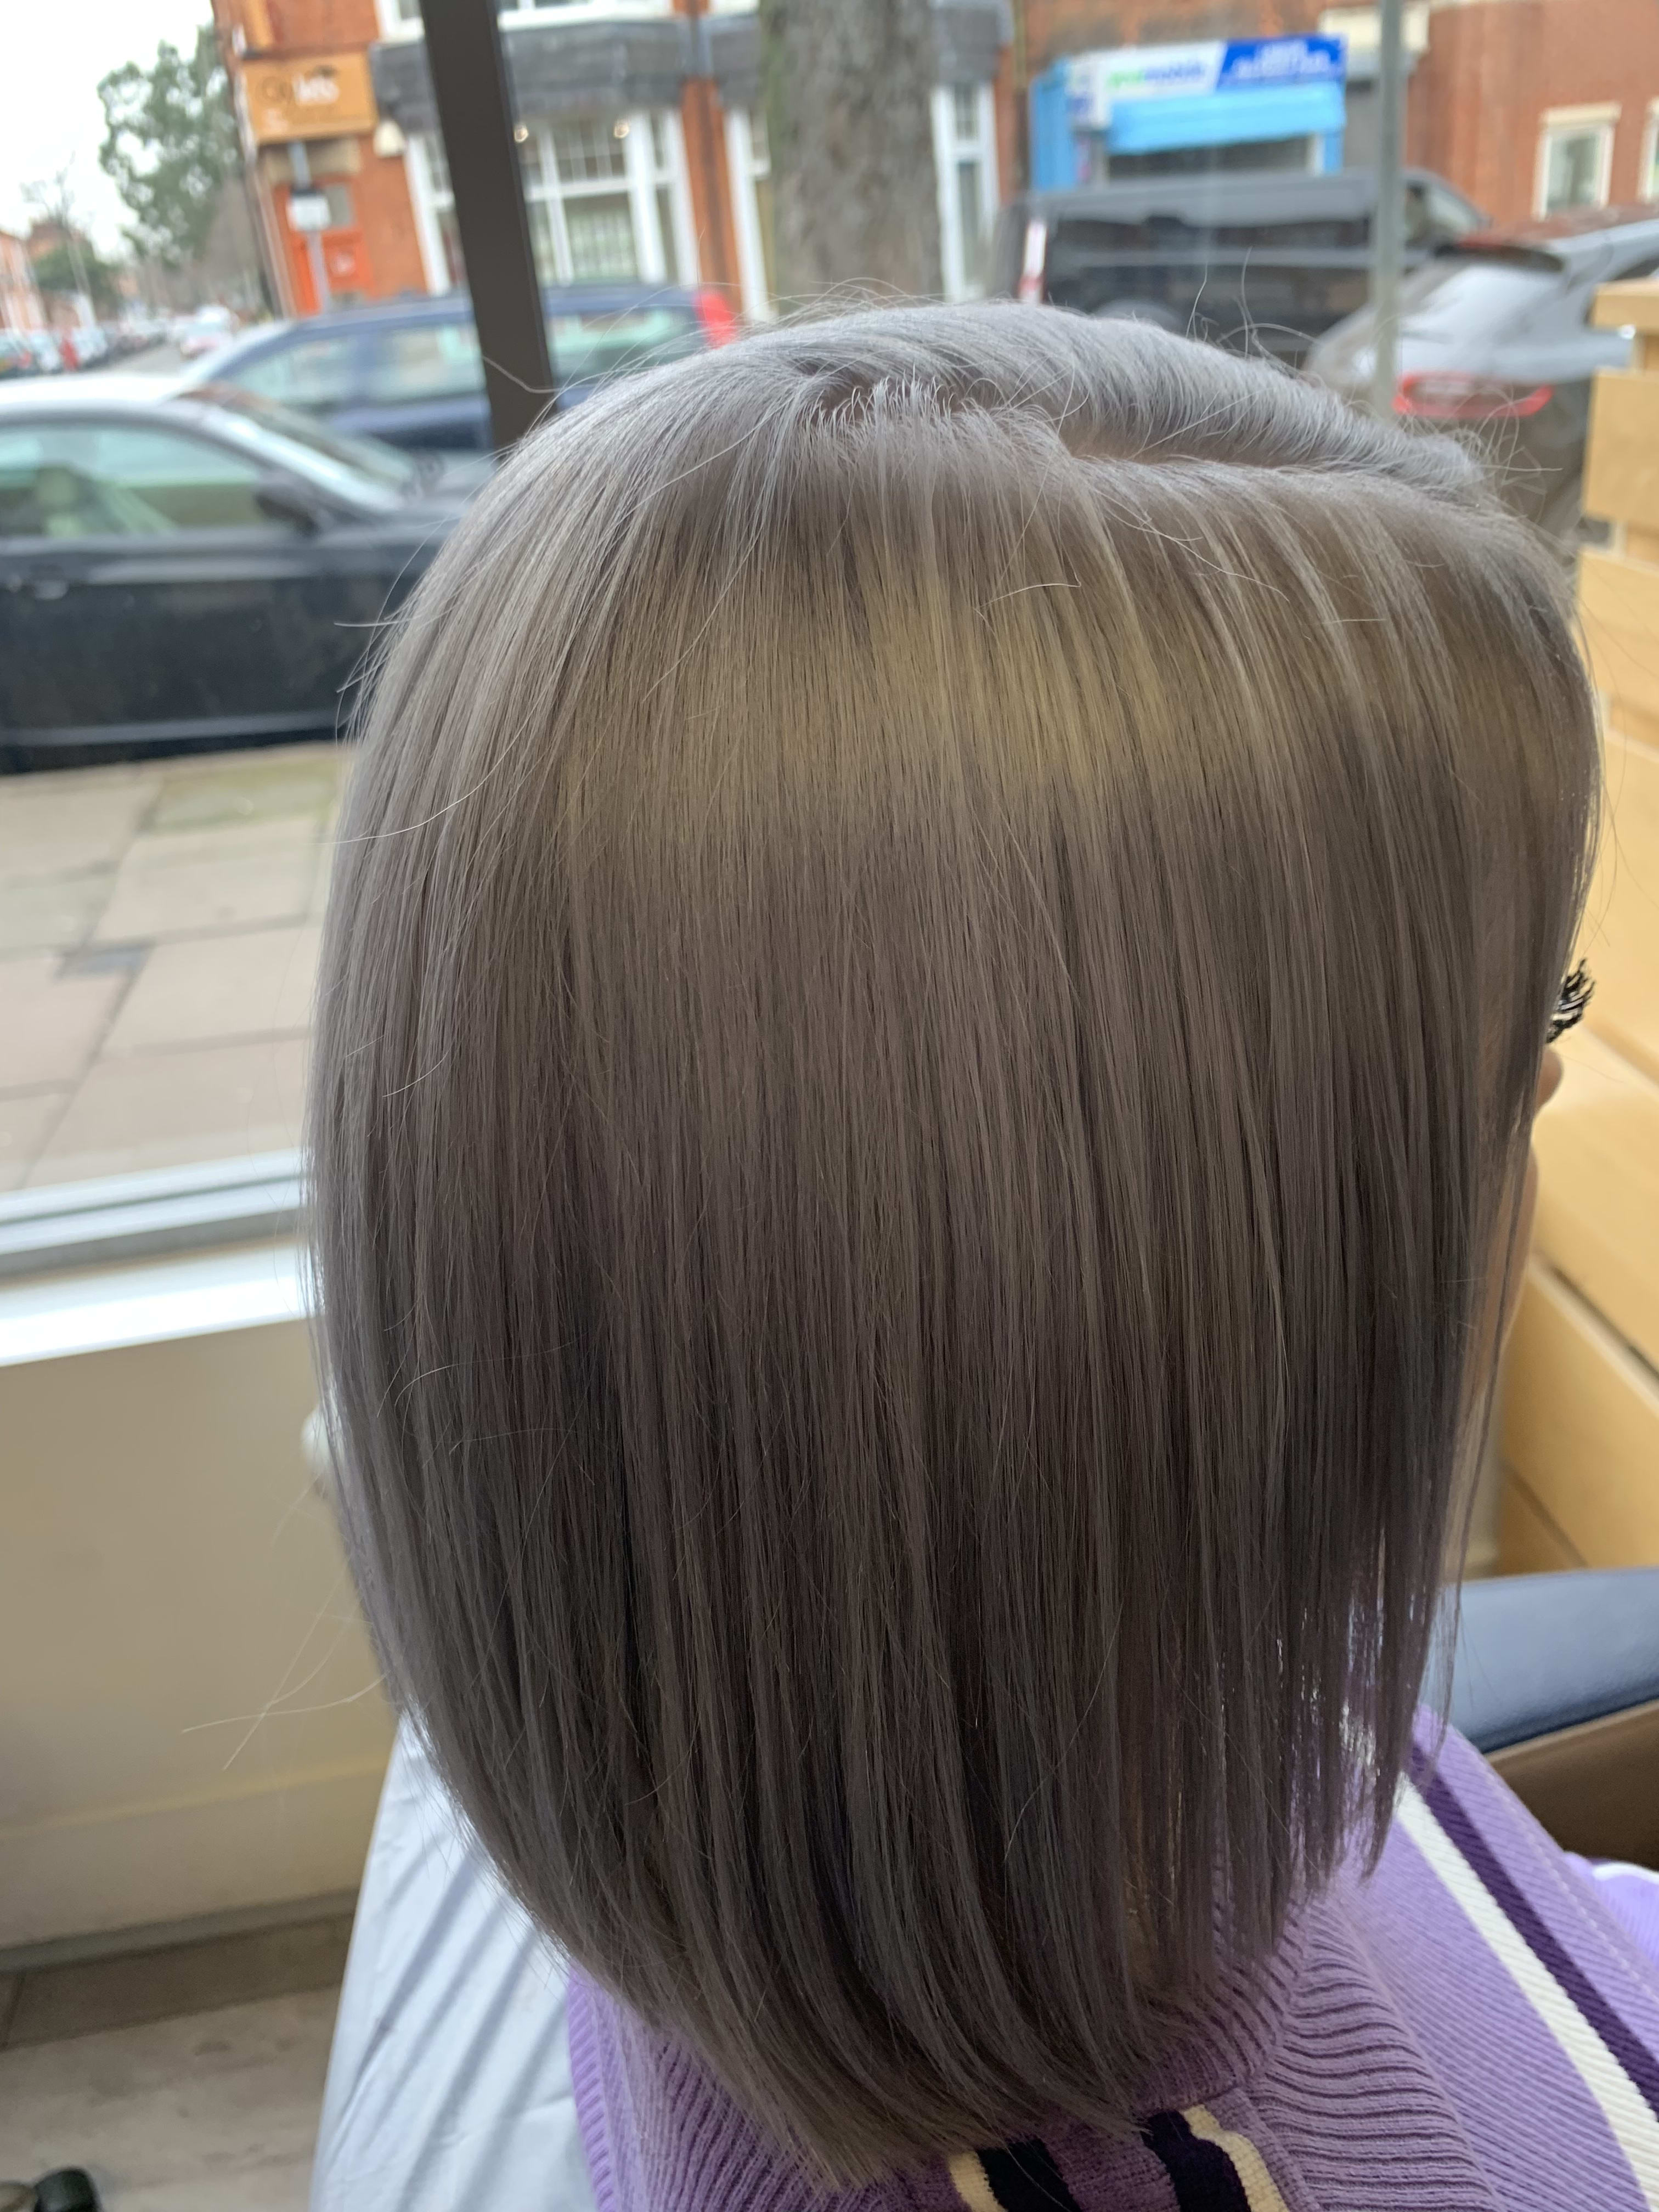 Hair Colouring (Roots)